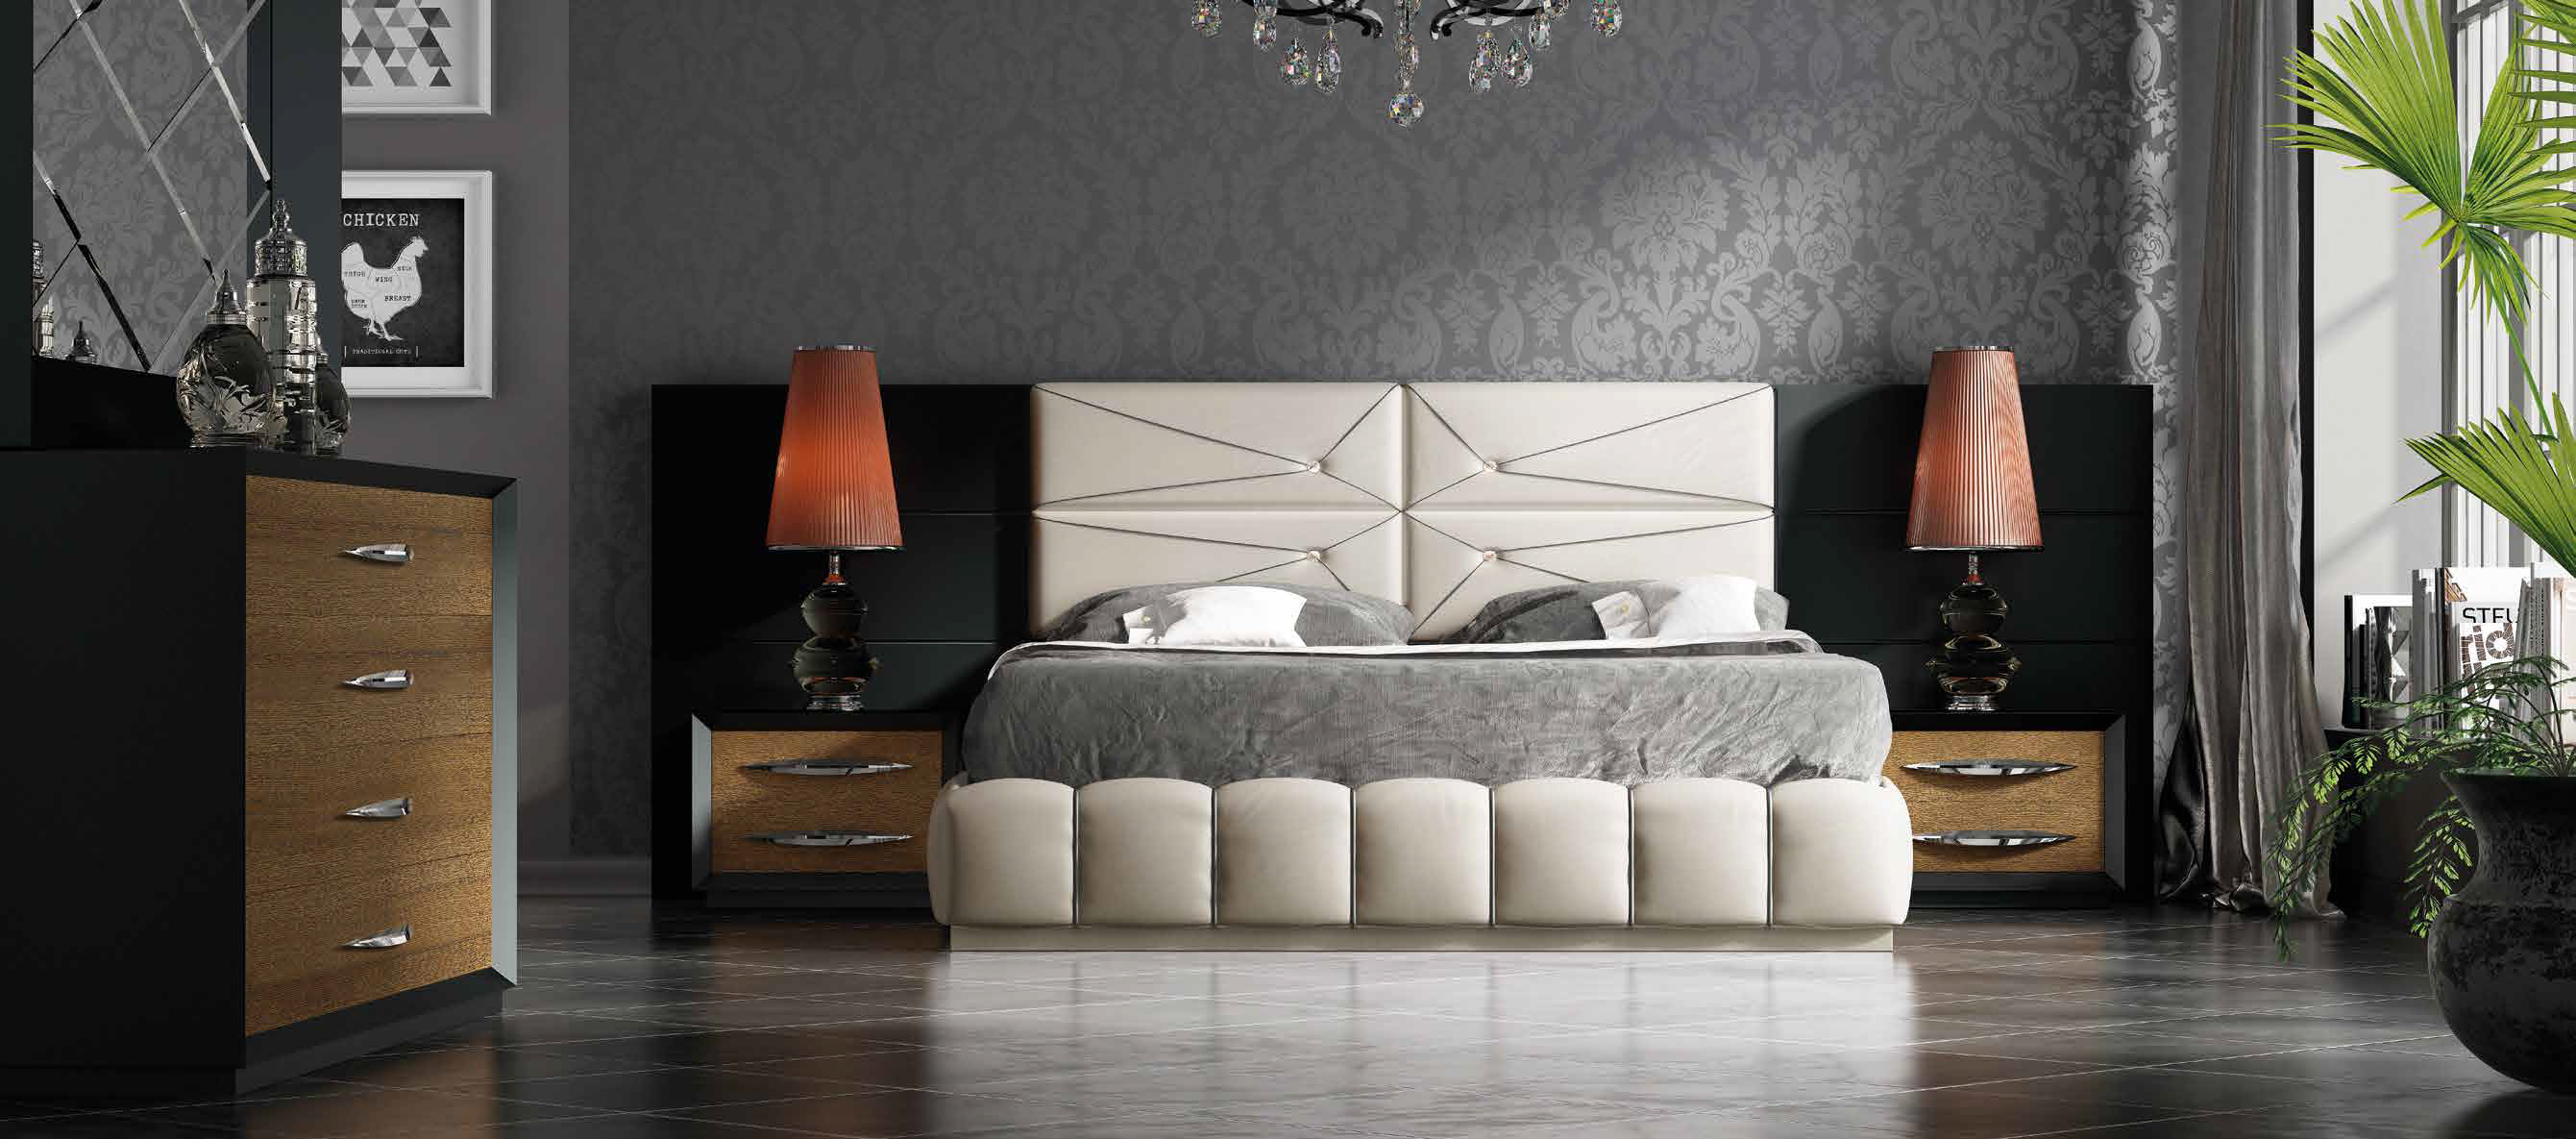 Brands Franco Furniture Bedrooms vol1, Spain DOR 72